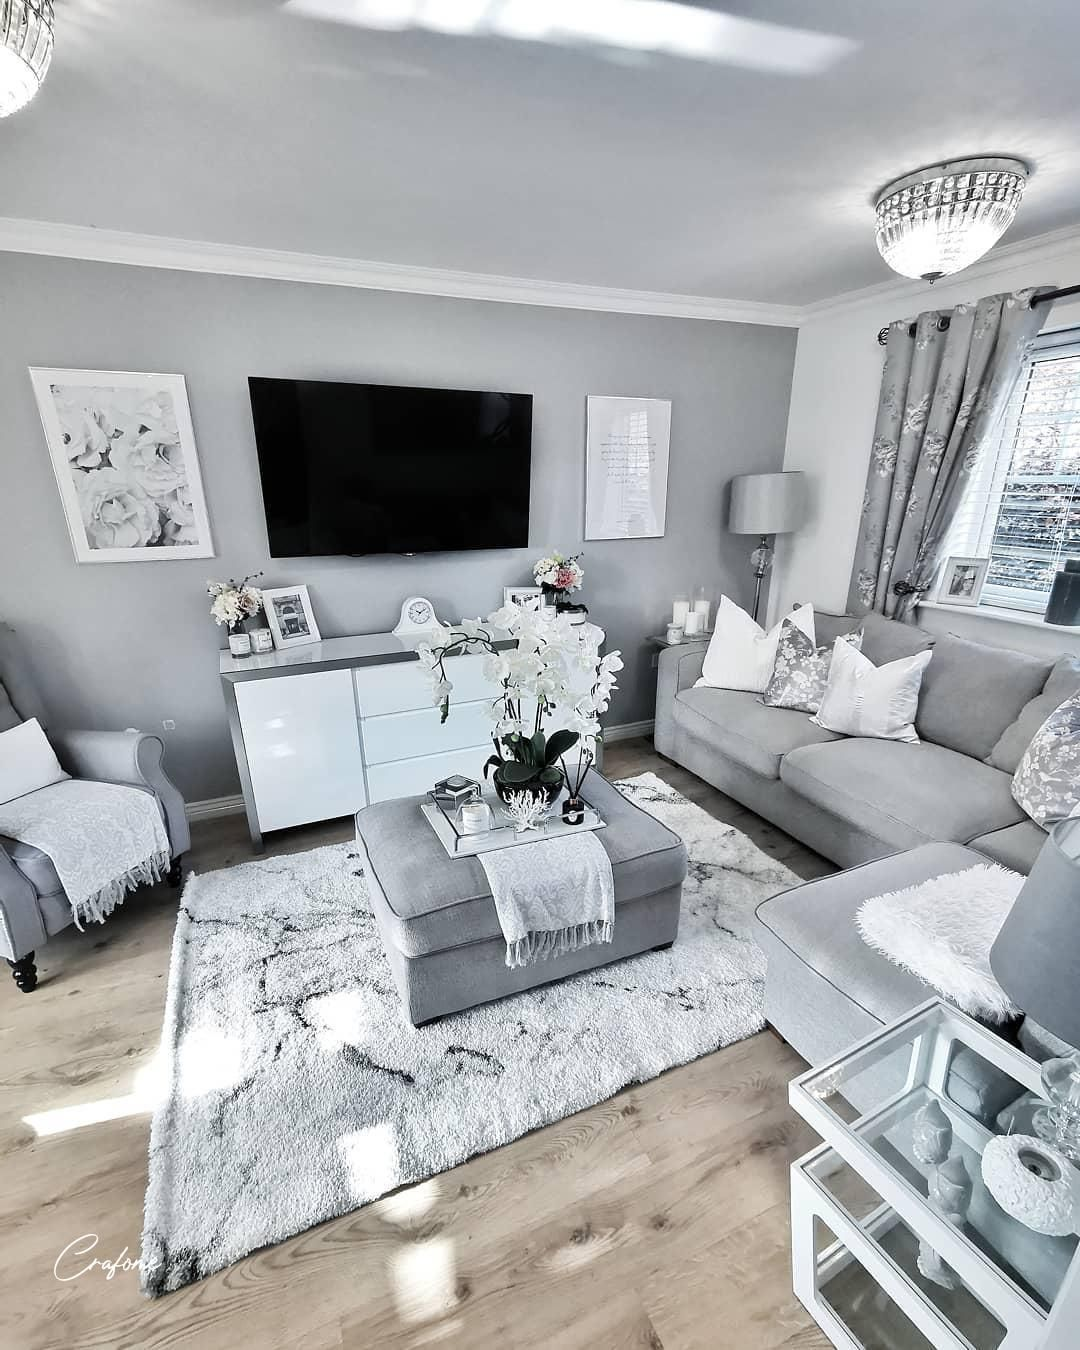 50 Grey Living Room Ideas You Must Look Crafome Gray Living Room Design Apartment Living Room Living Room Grey